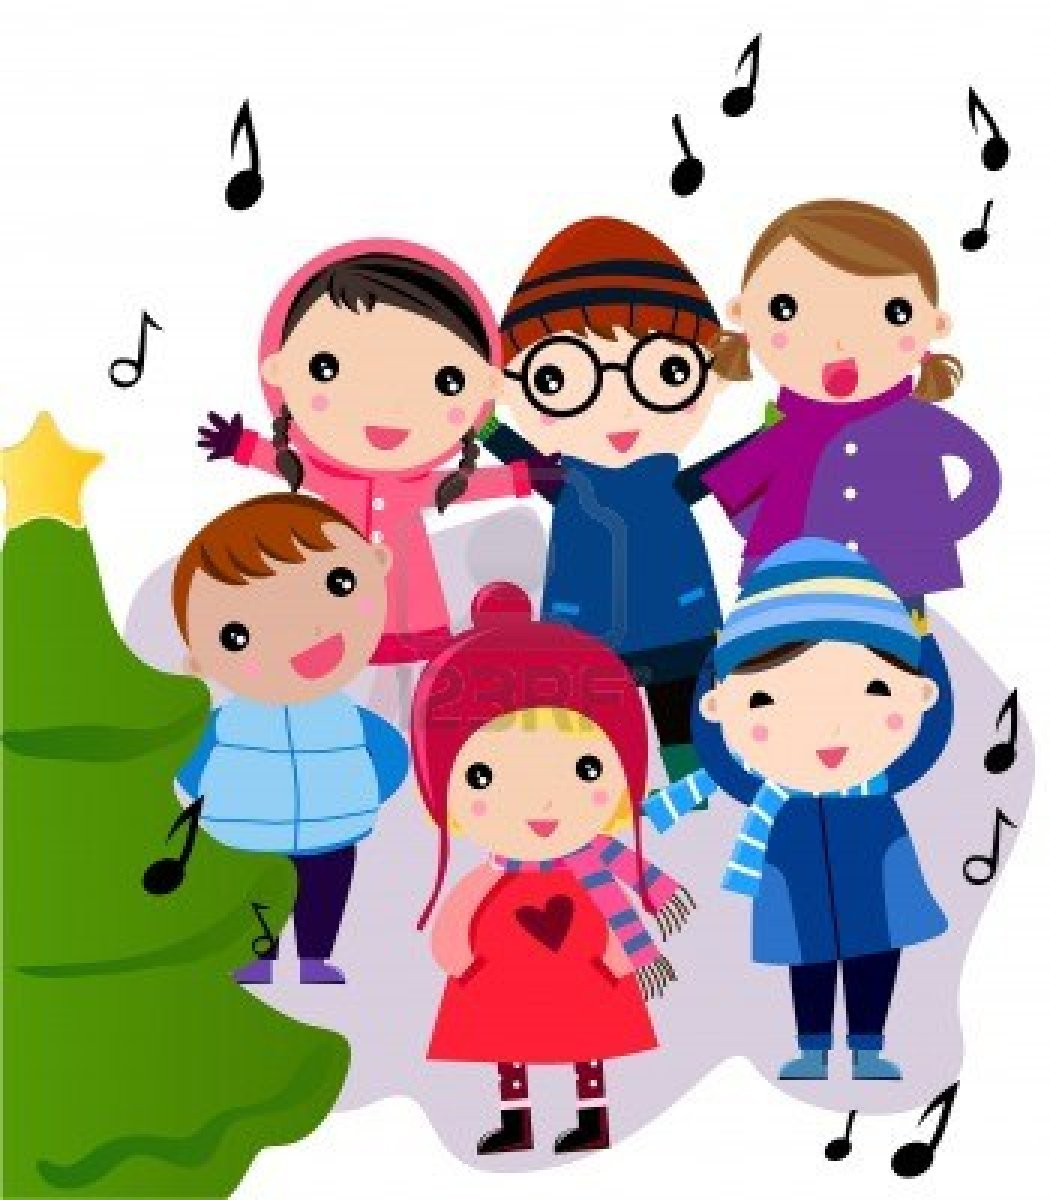 Christmas clipart for schools clip freeuse stock Free Christmas Cliparts Carolers, Download Free Clip Art, Free Clip ... clip freeuse stock